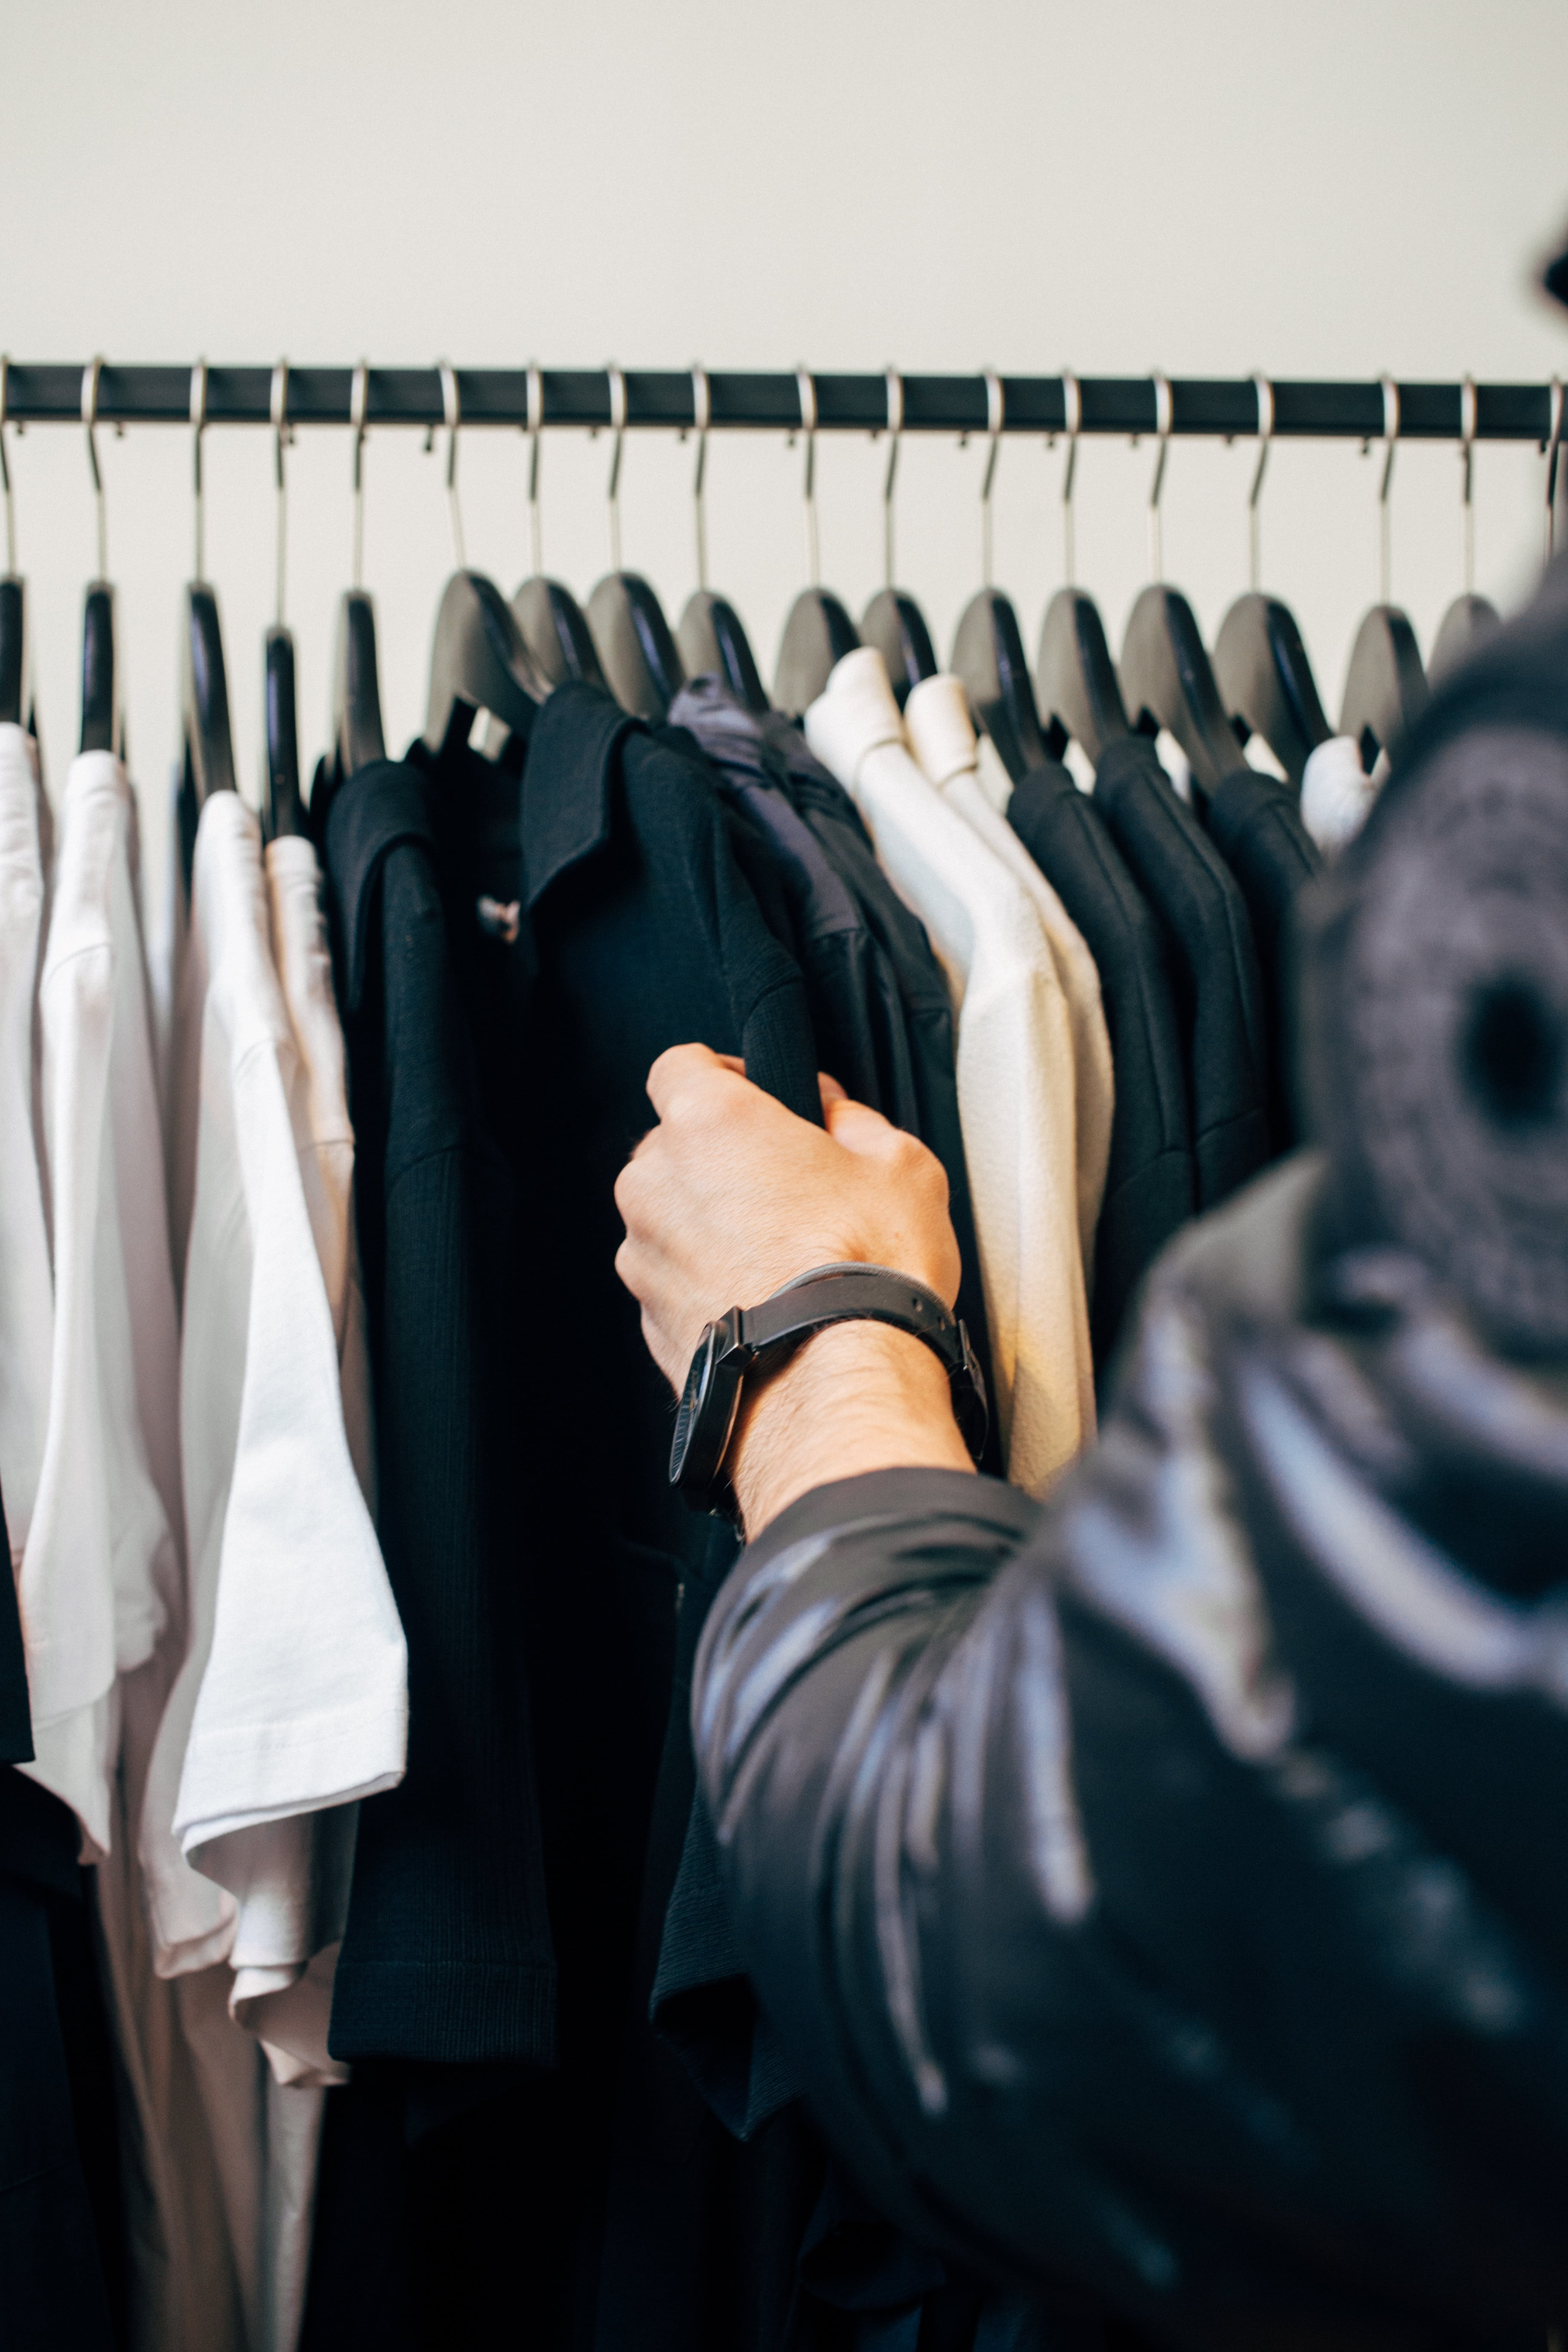 Avoid shopping to better manage your personal finances